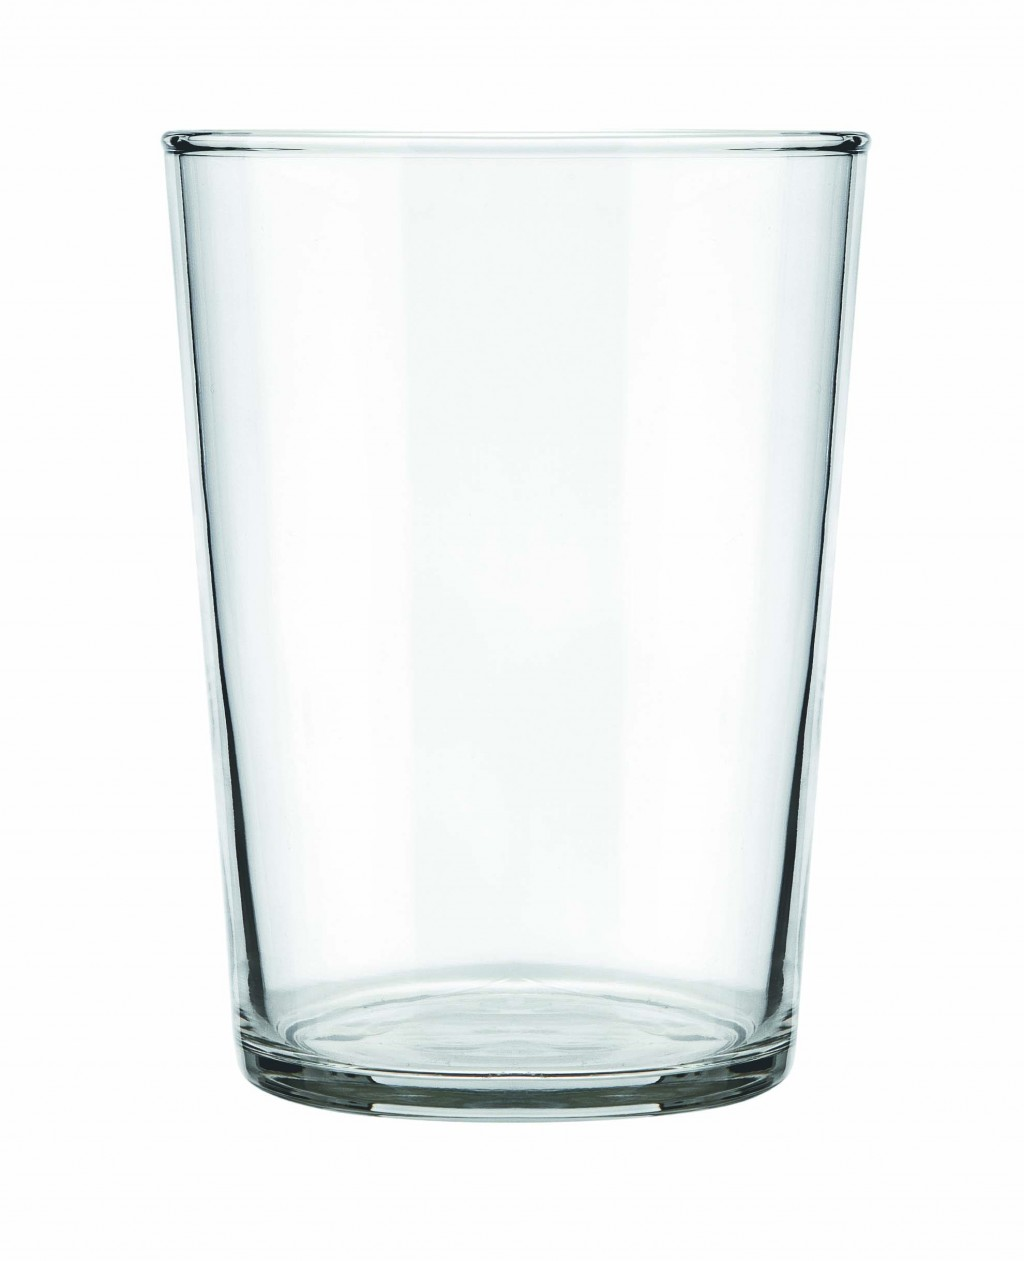 Vaso sidra tensionado 50cl exportcave for Vasos de colores de cristal